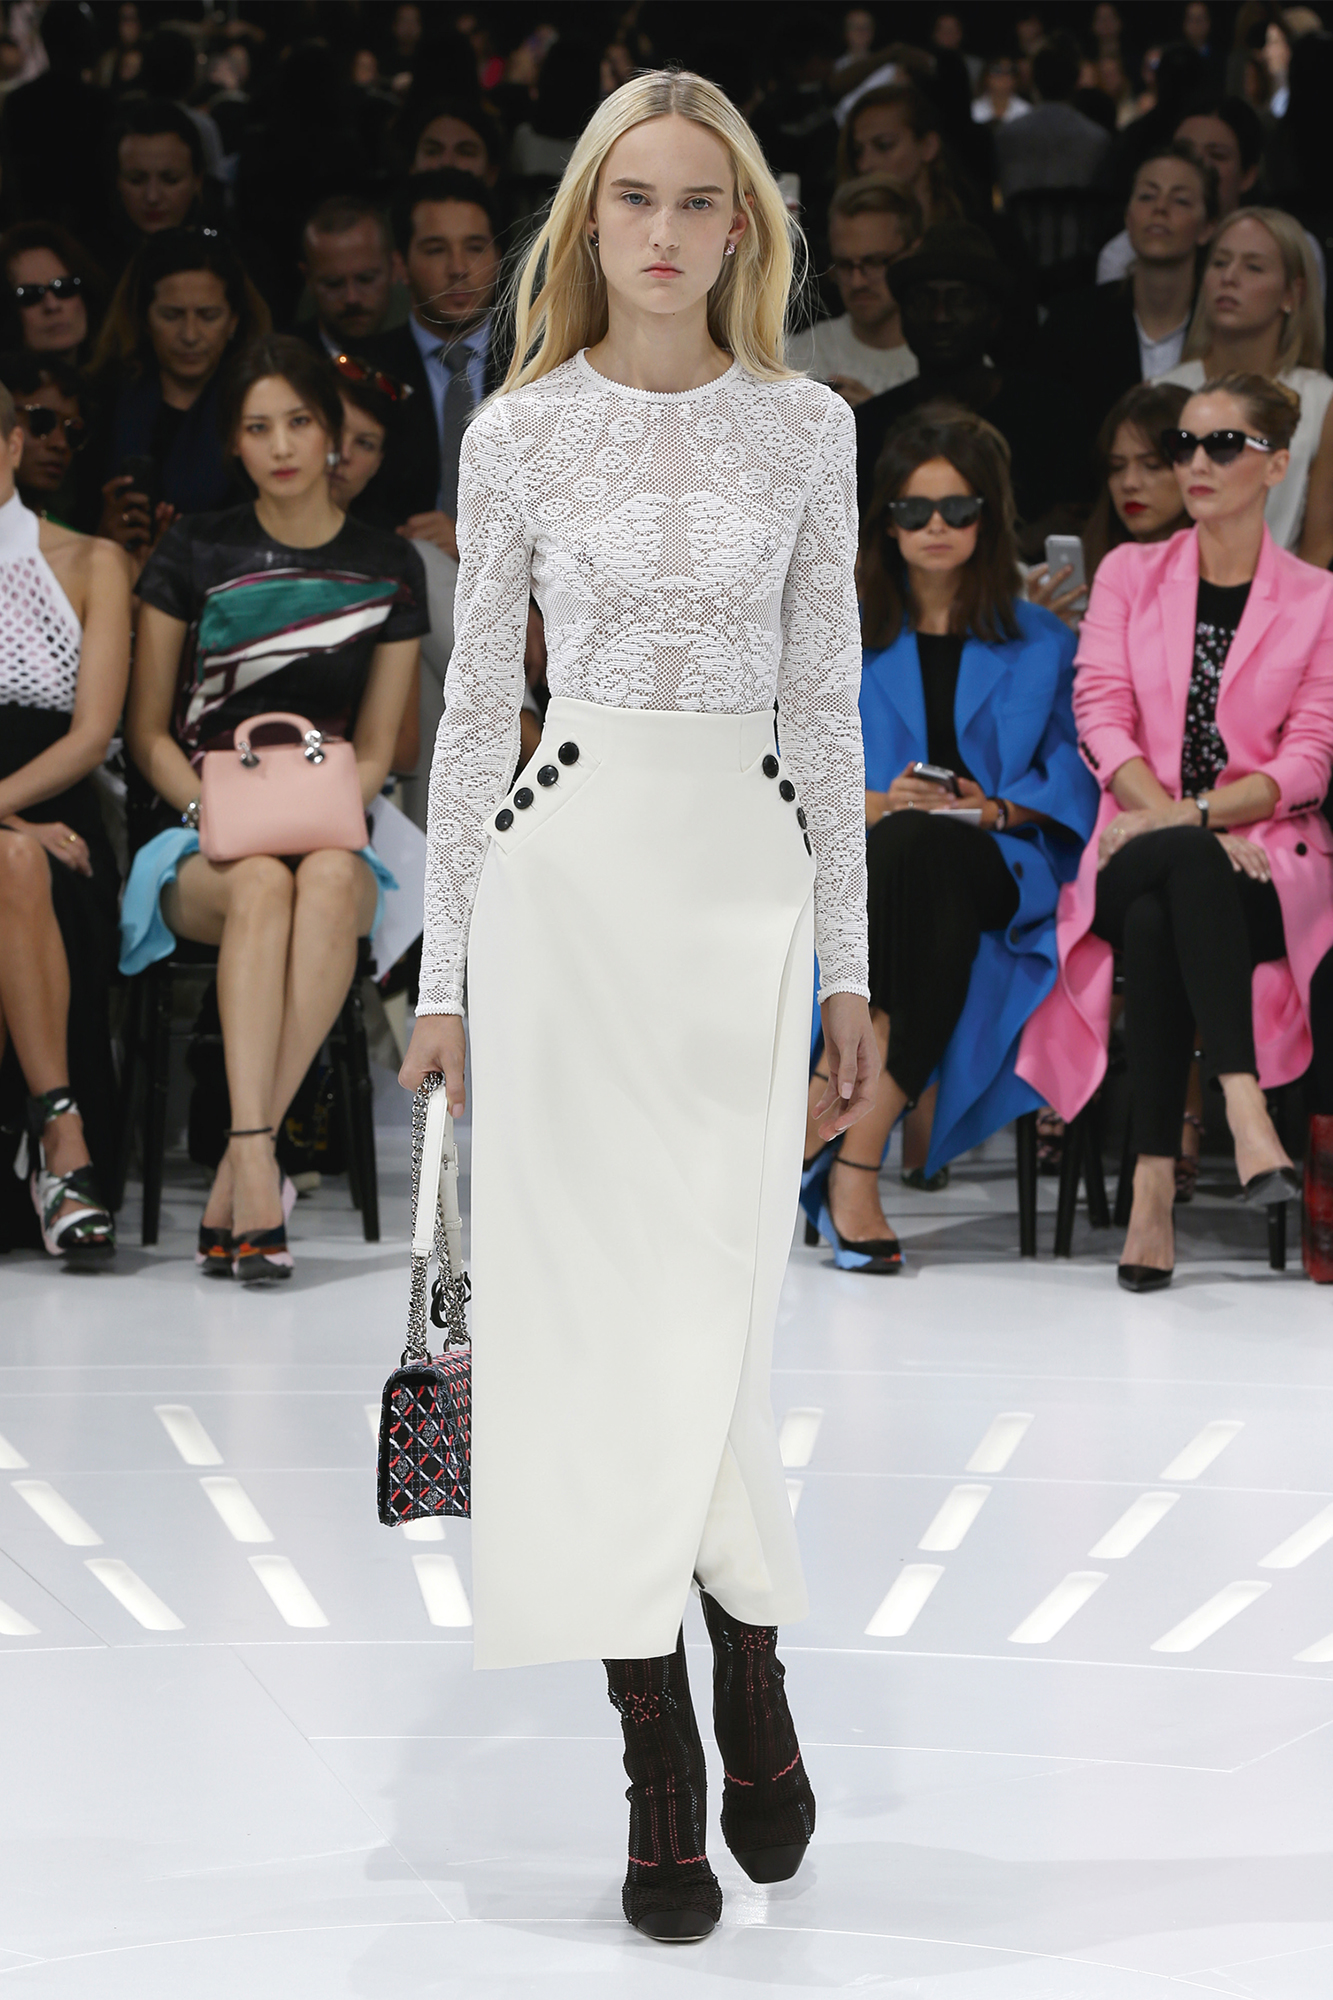 New Western Fashion Christian Dior Ready To Wear Dresses Spring Summer Collection 2015 (32)